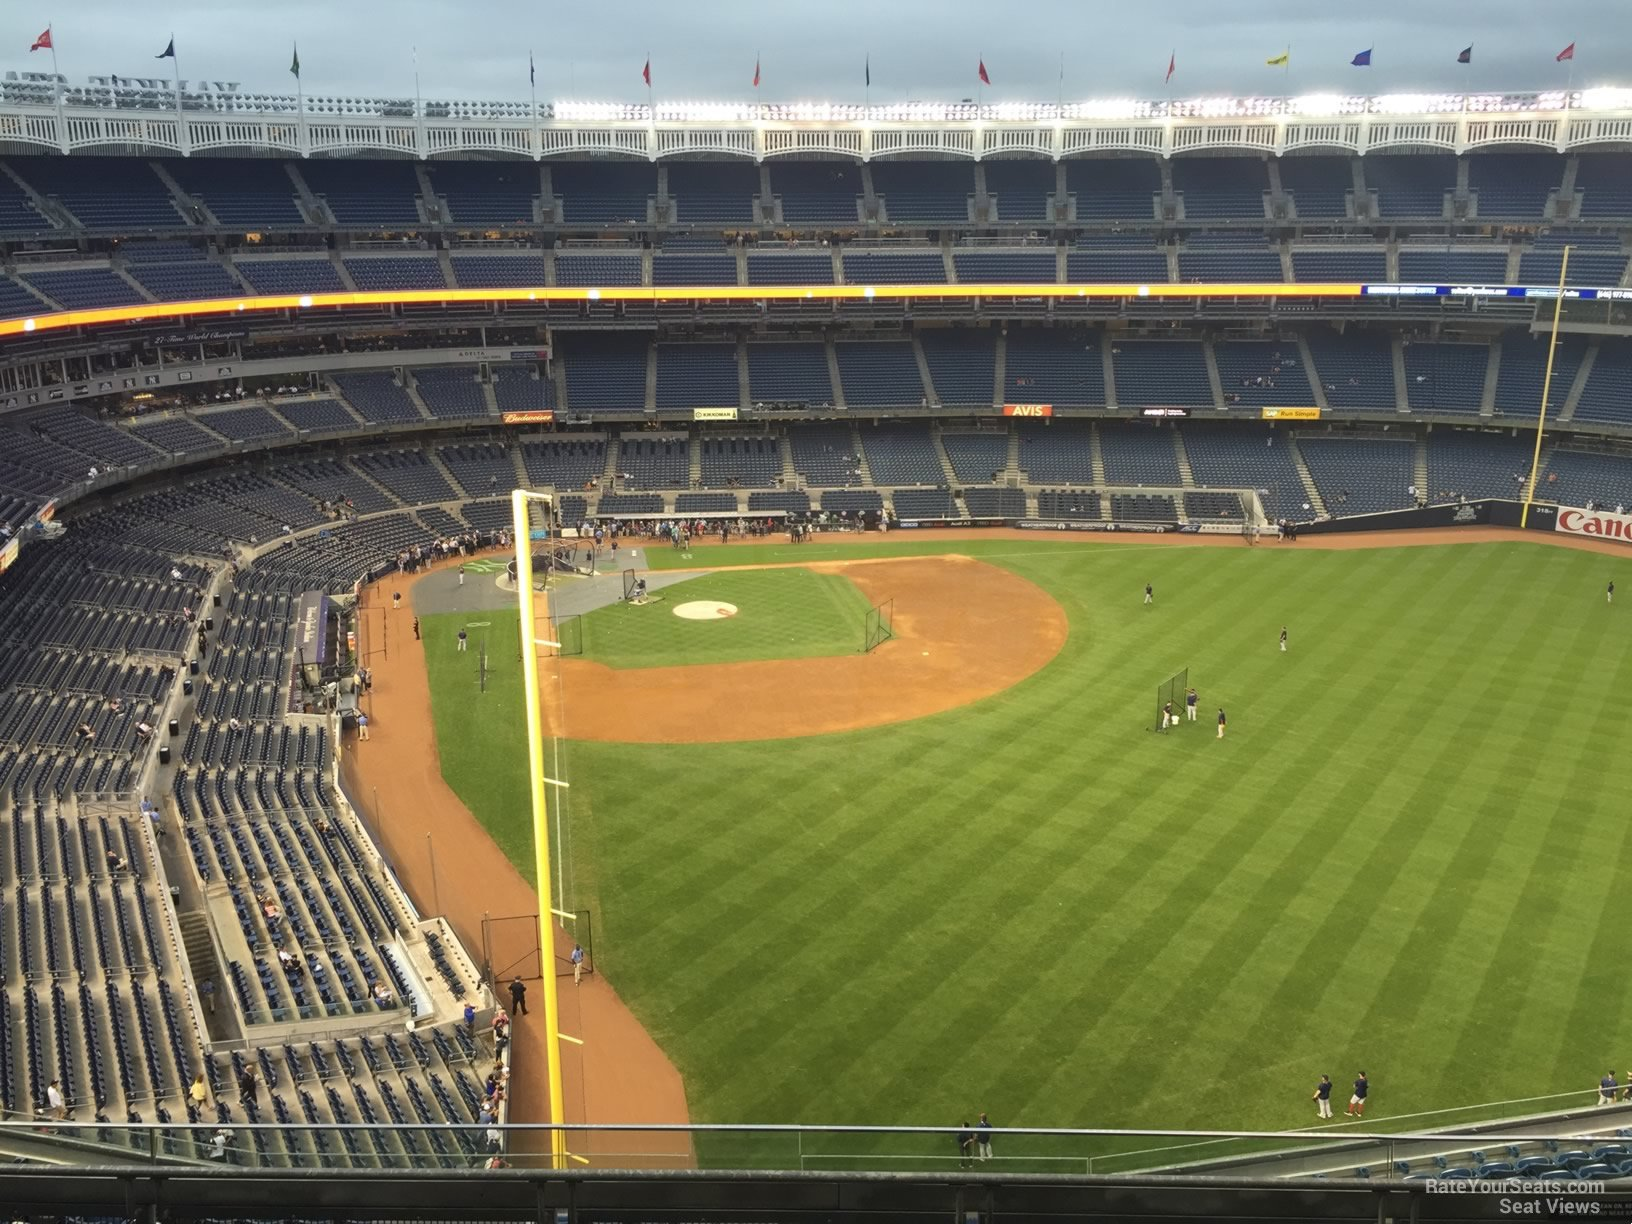 New York Yankees Seat View for Yankee Stadium Section 407A, Row 6